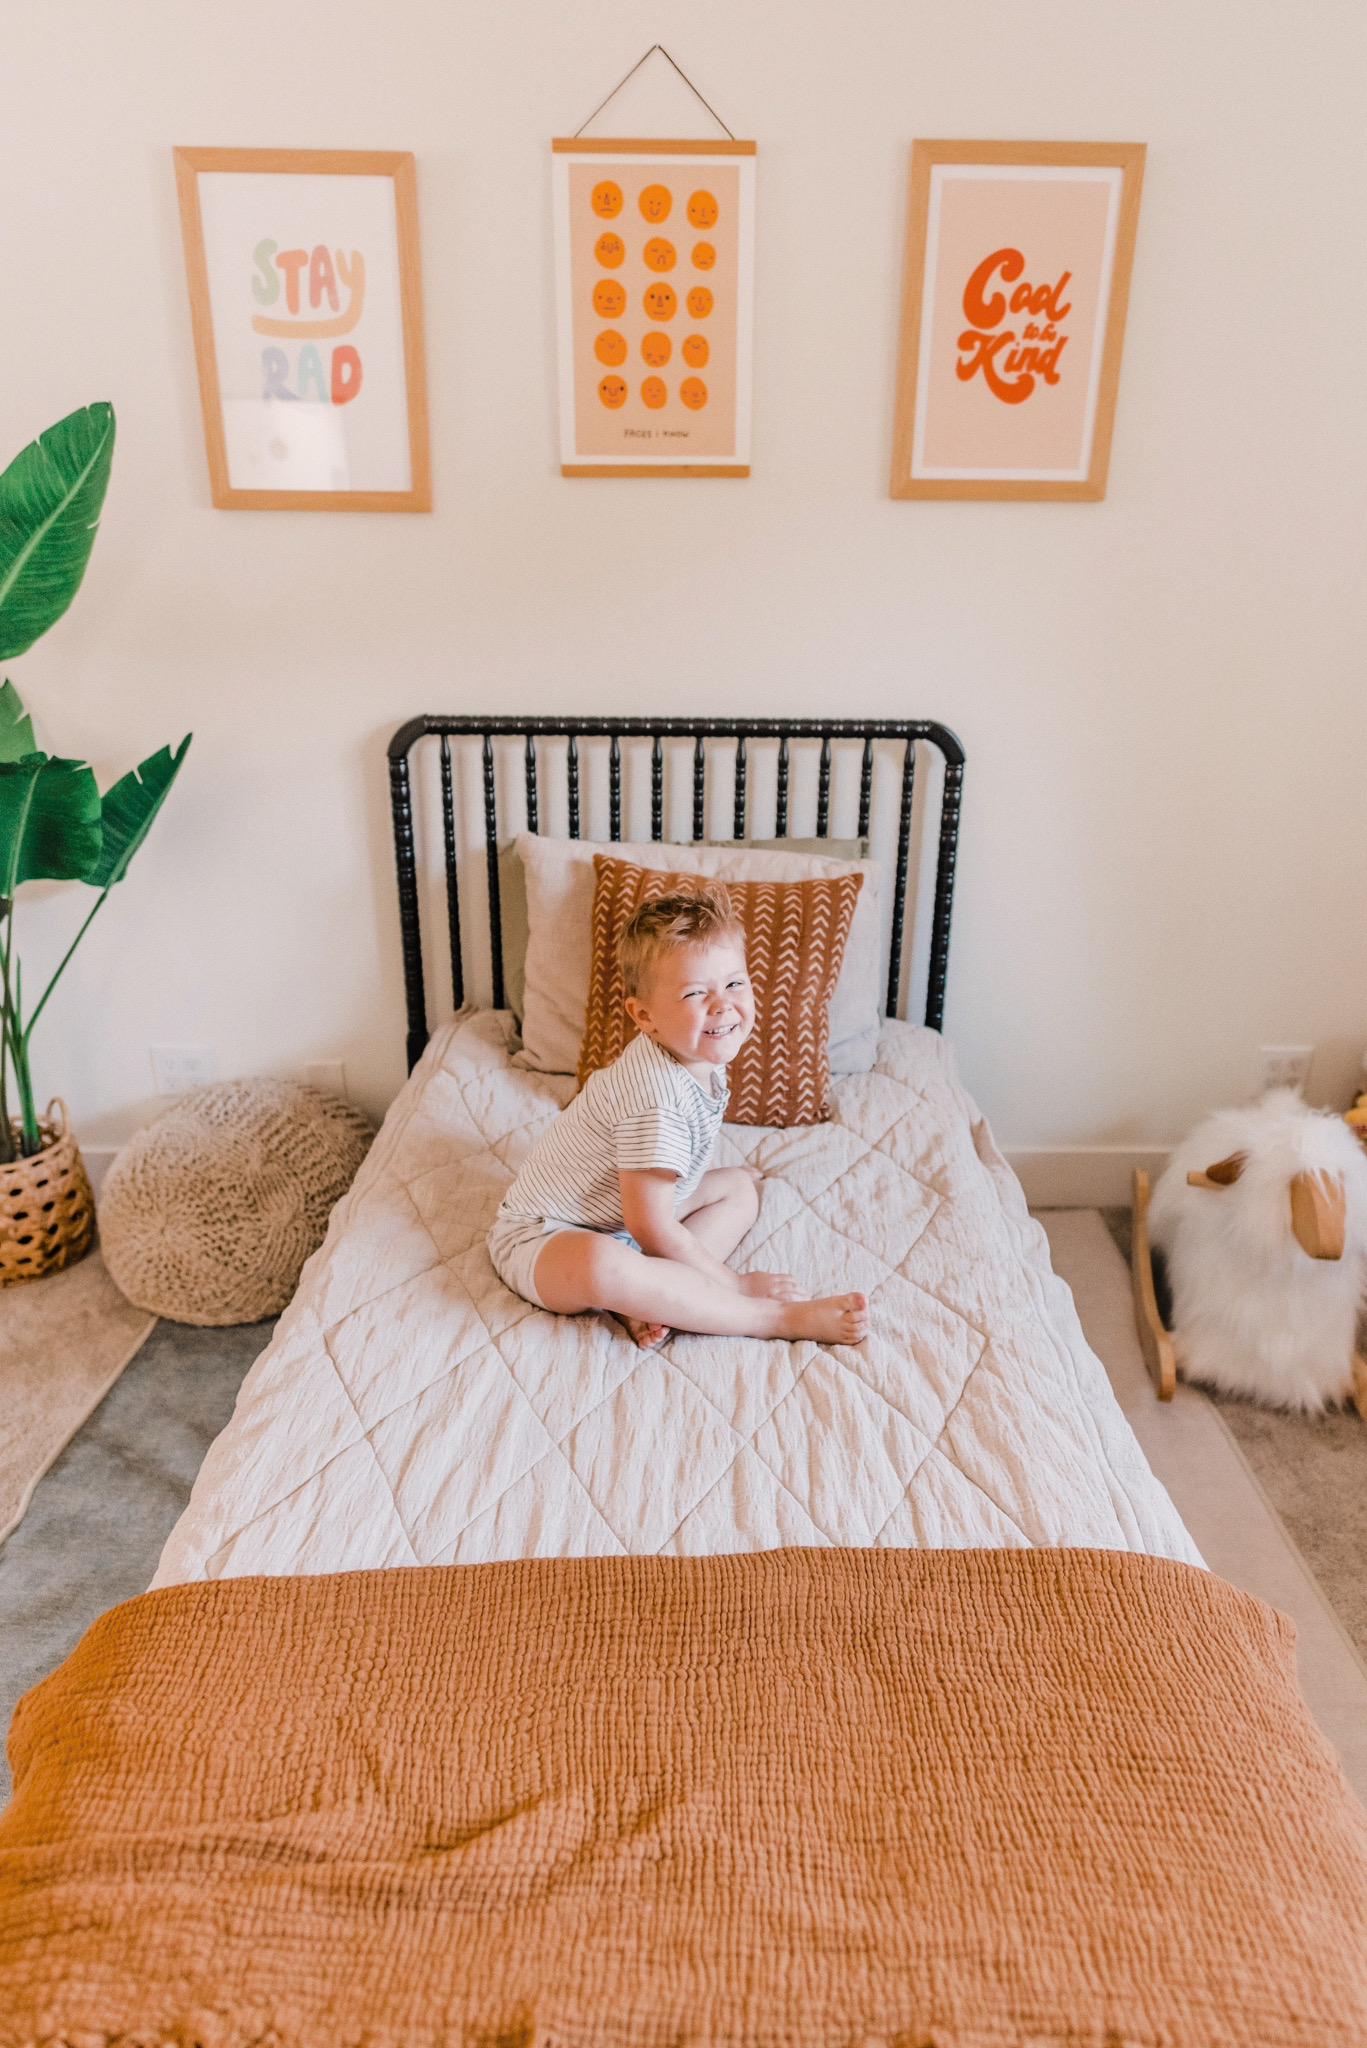 Barn and Willow by popular San Diego life and style blog, Navy Grace: image of a little boy sitting on a bed in a bedroom decorated with Barn and Willow drapery, Wayfair Jenny Lind Twin Platform Bed, Ruggable Domo Sage Rug, Urban Outfitters Rhianna Marie Chan Cool To Be Kind Art Print, Urban Outfitters  Hover to zoom.  Hiller Goodspeed Faces I Know Art Print, Urban Outfitters Phirst Stay Rad Colors Art Print, H&M Cotton Throw, and Amazon One 5 foot Artificial Silk Bird of Paradise Palm Tree Potted Plant.